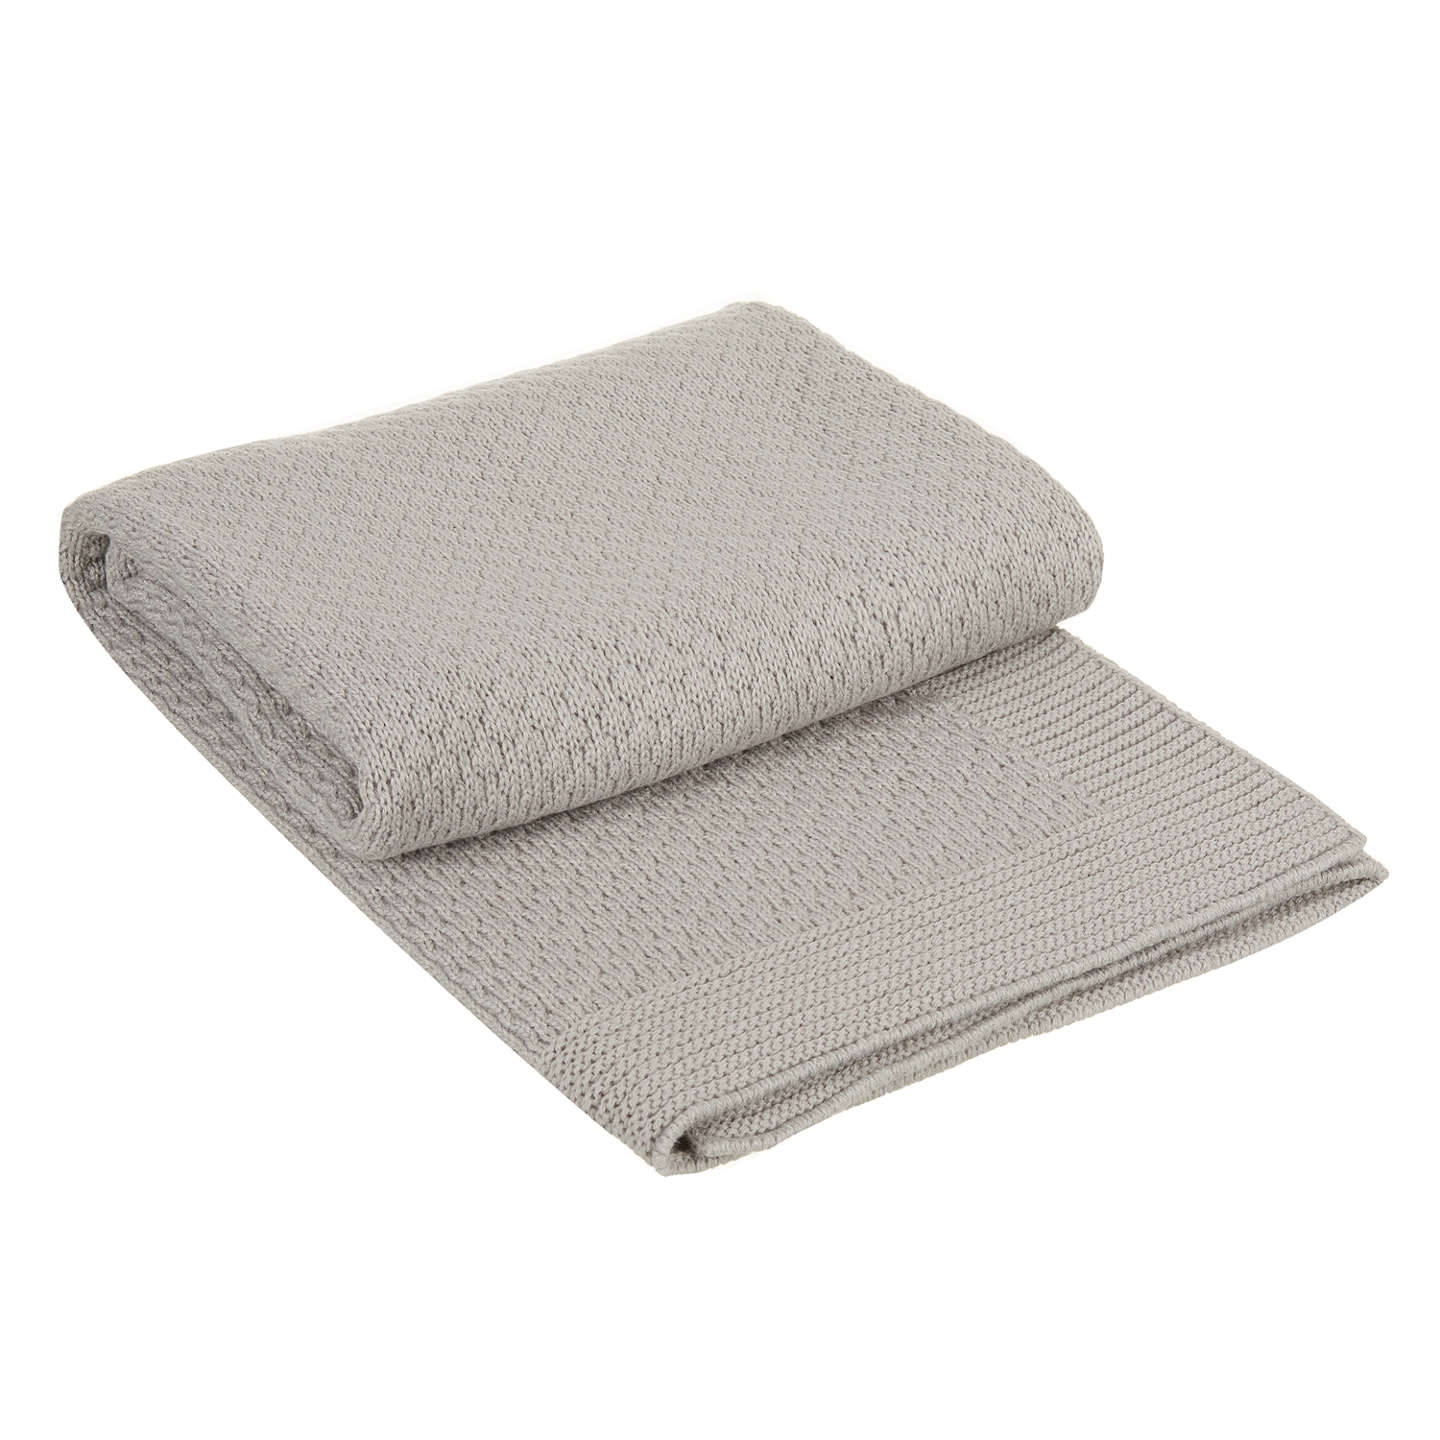 BuyJohn Lewis Honeycomb Pram Blanket, Grey Online at johnlewis.com